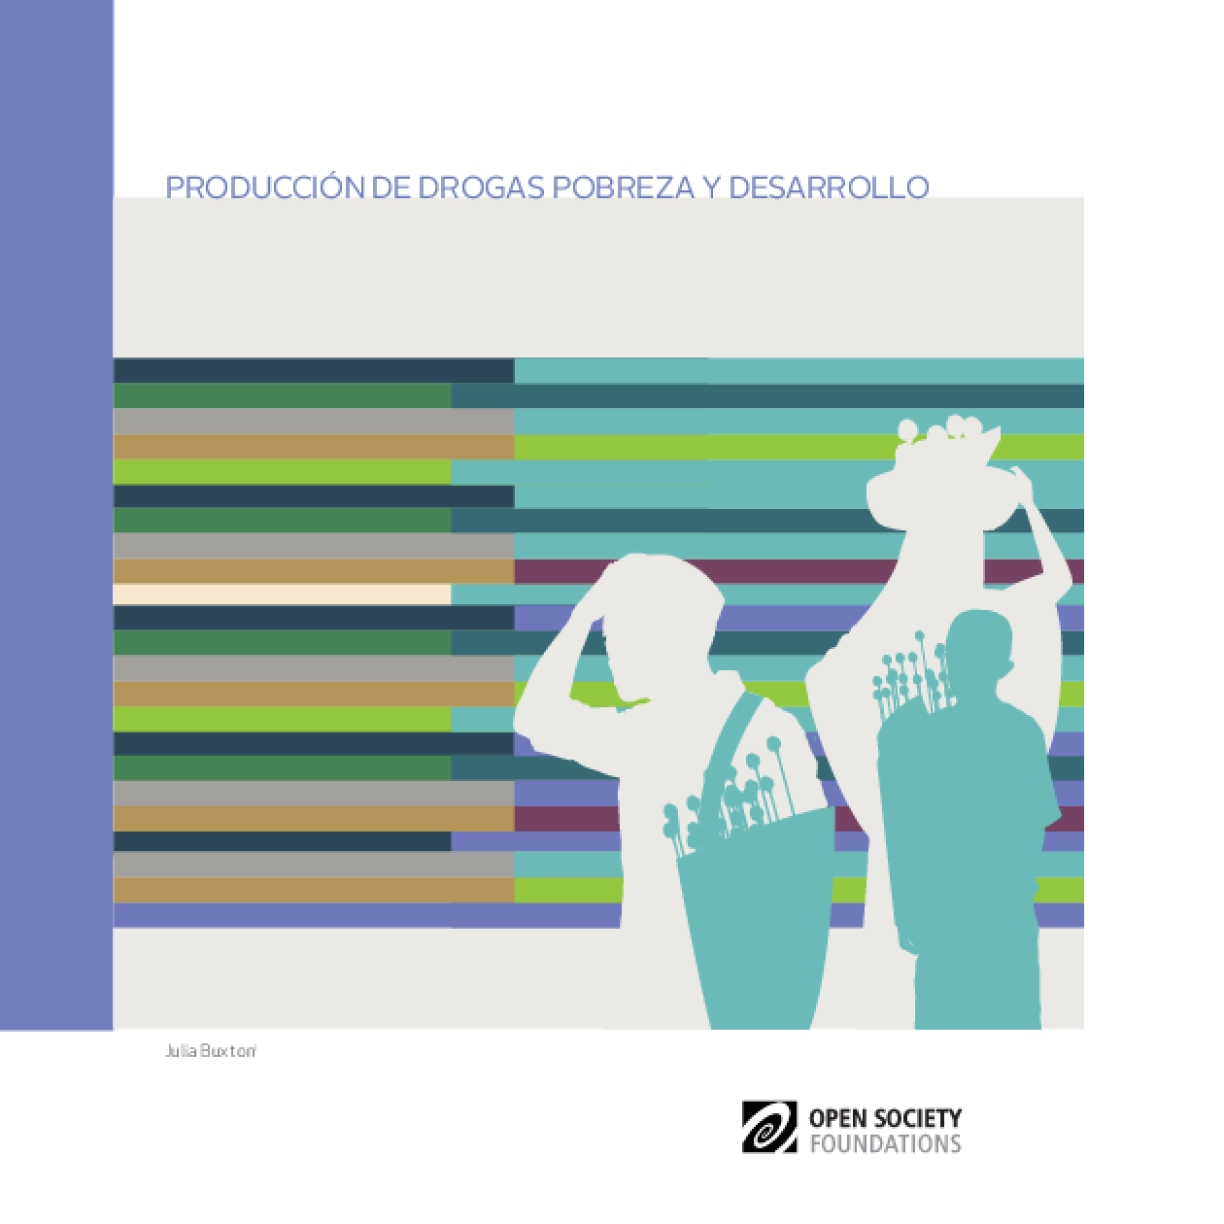 Drug Crop Production, Poverty, and Development: Spanish